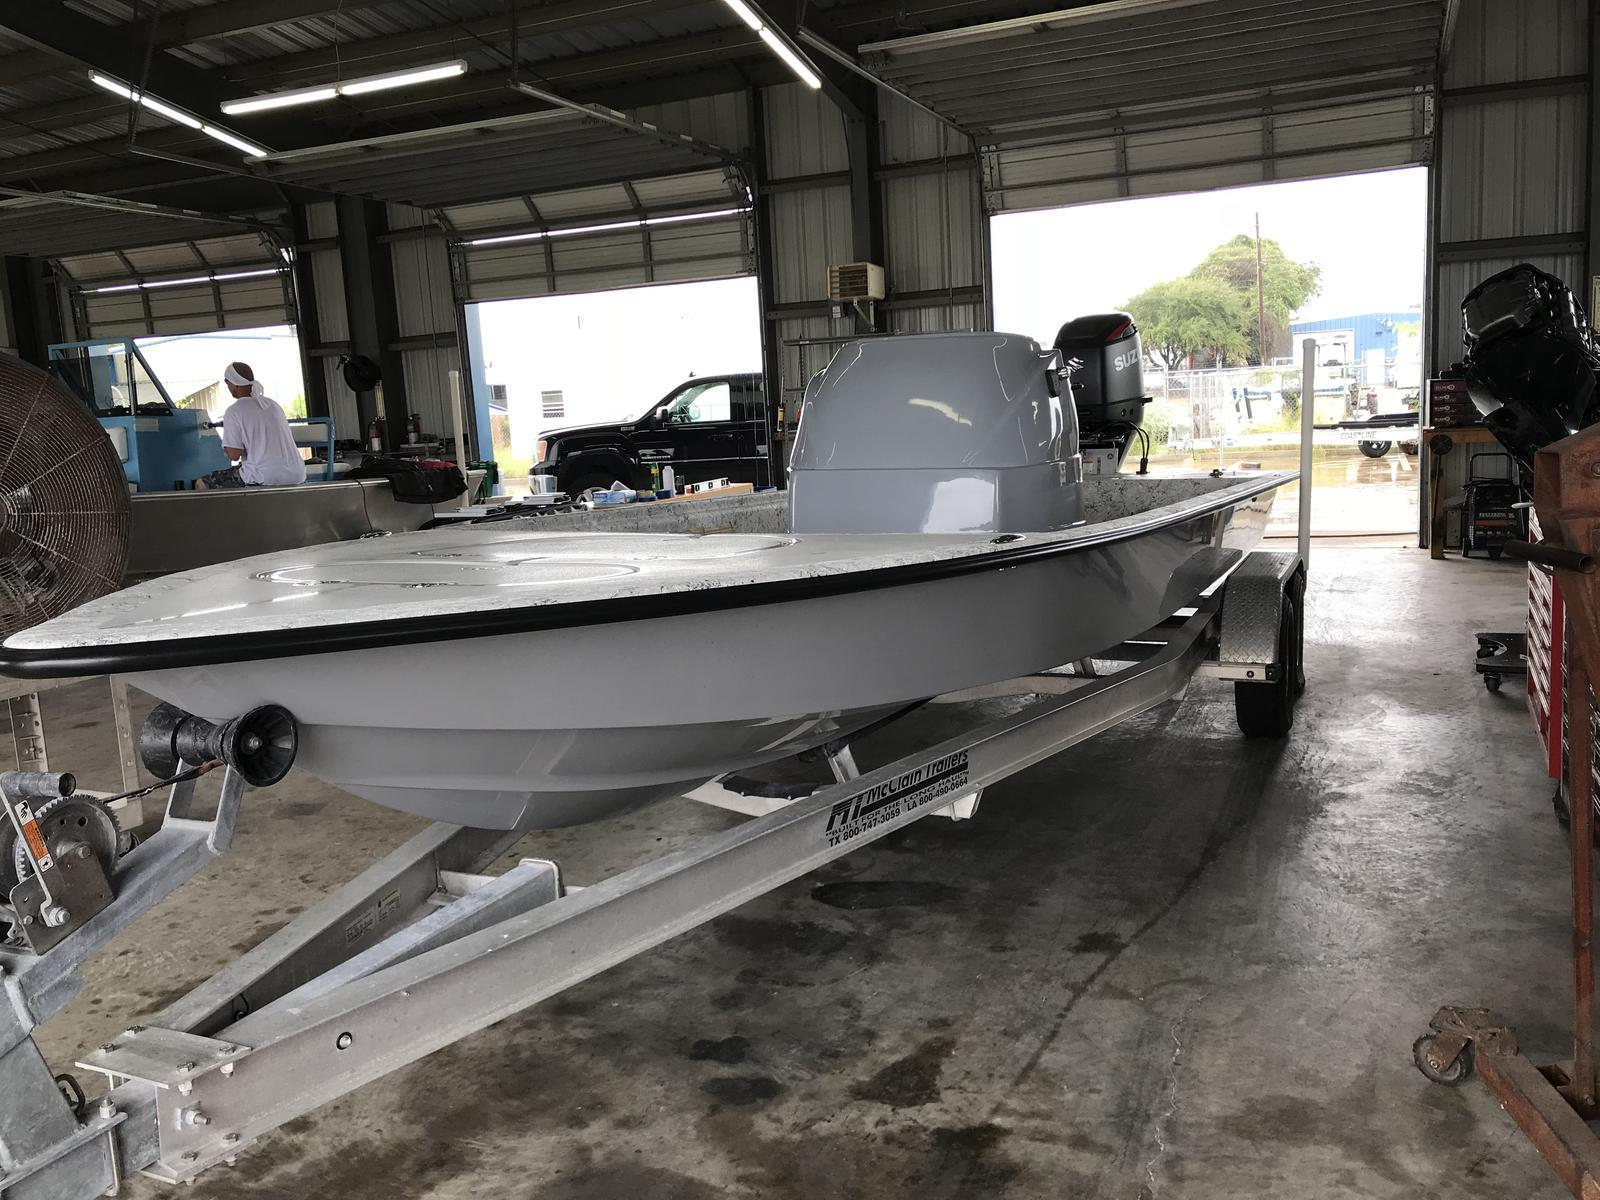 2019 Coastal Custom Boats Fury for sale in Corpus Christi, TX | Texas  Watercraft and Marine (361) 937-5511